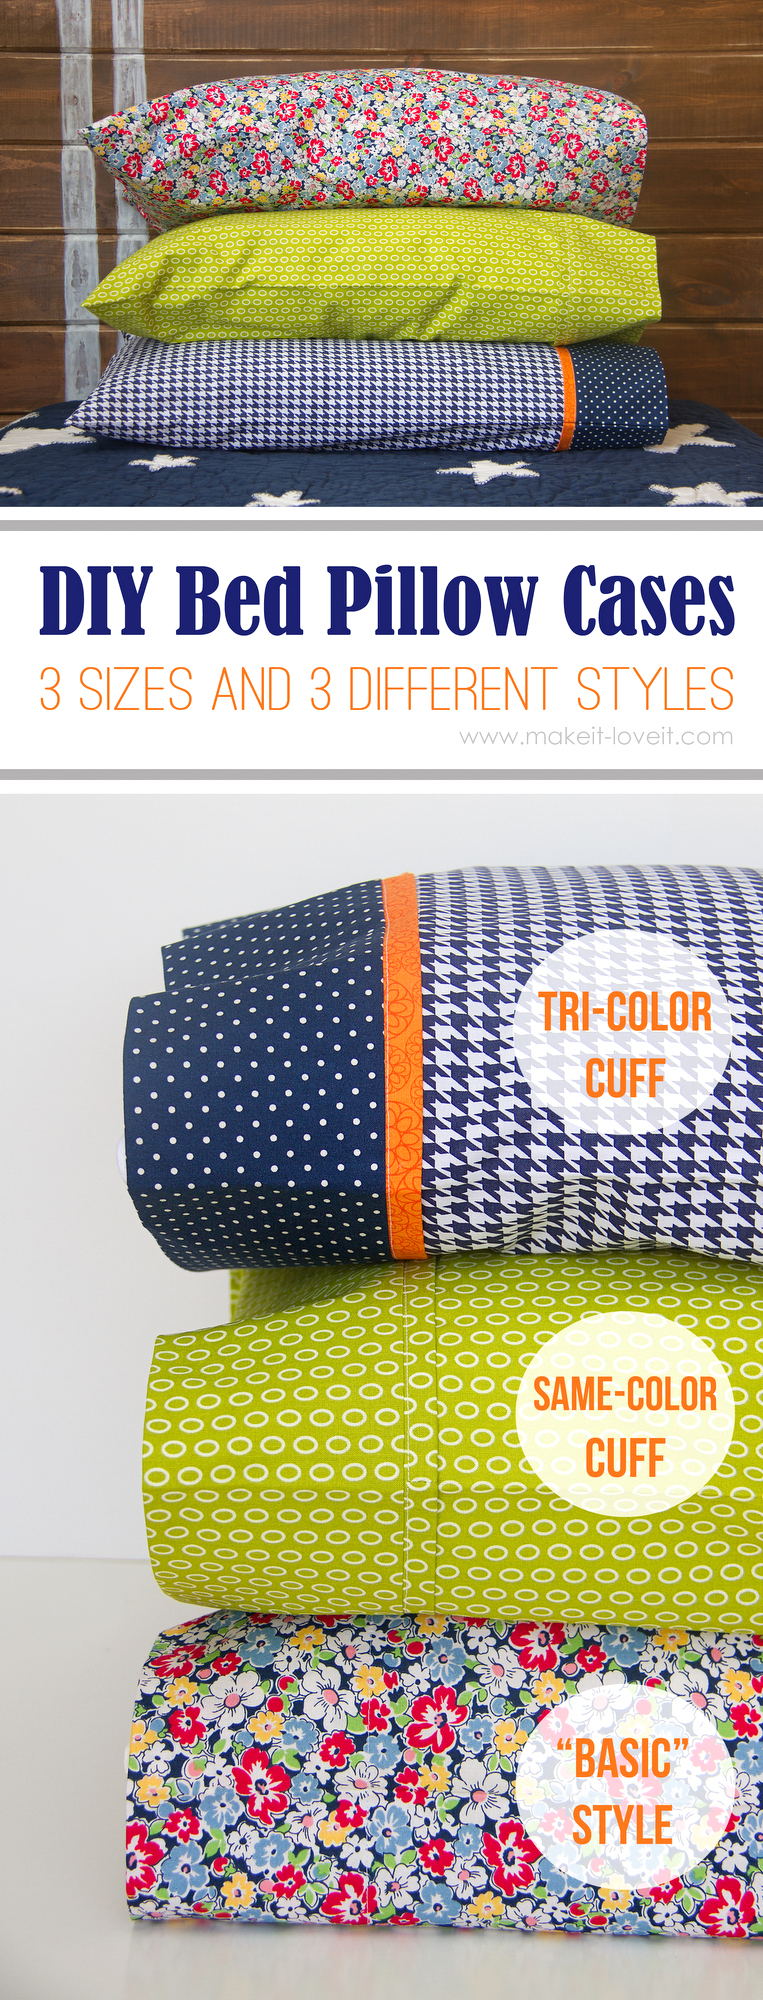 Raindrop Pillow Tutorial\u2026a great project for spring! & In \